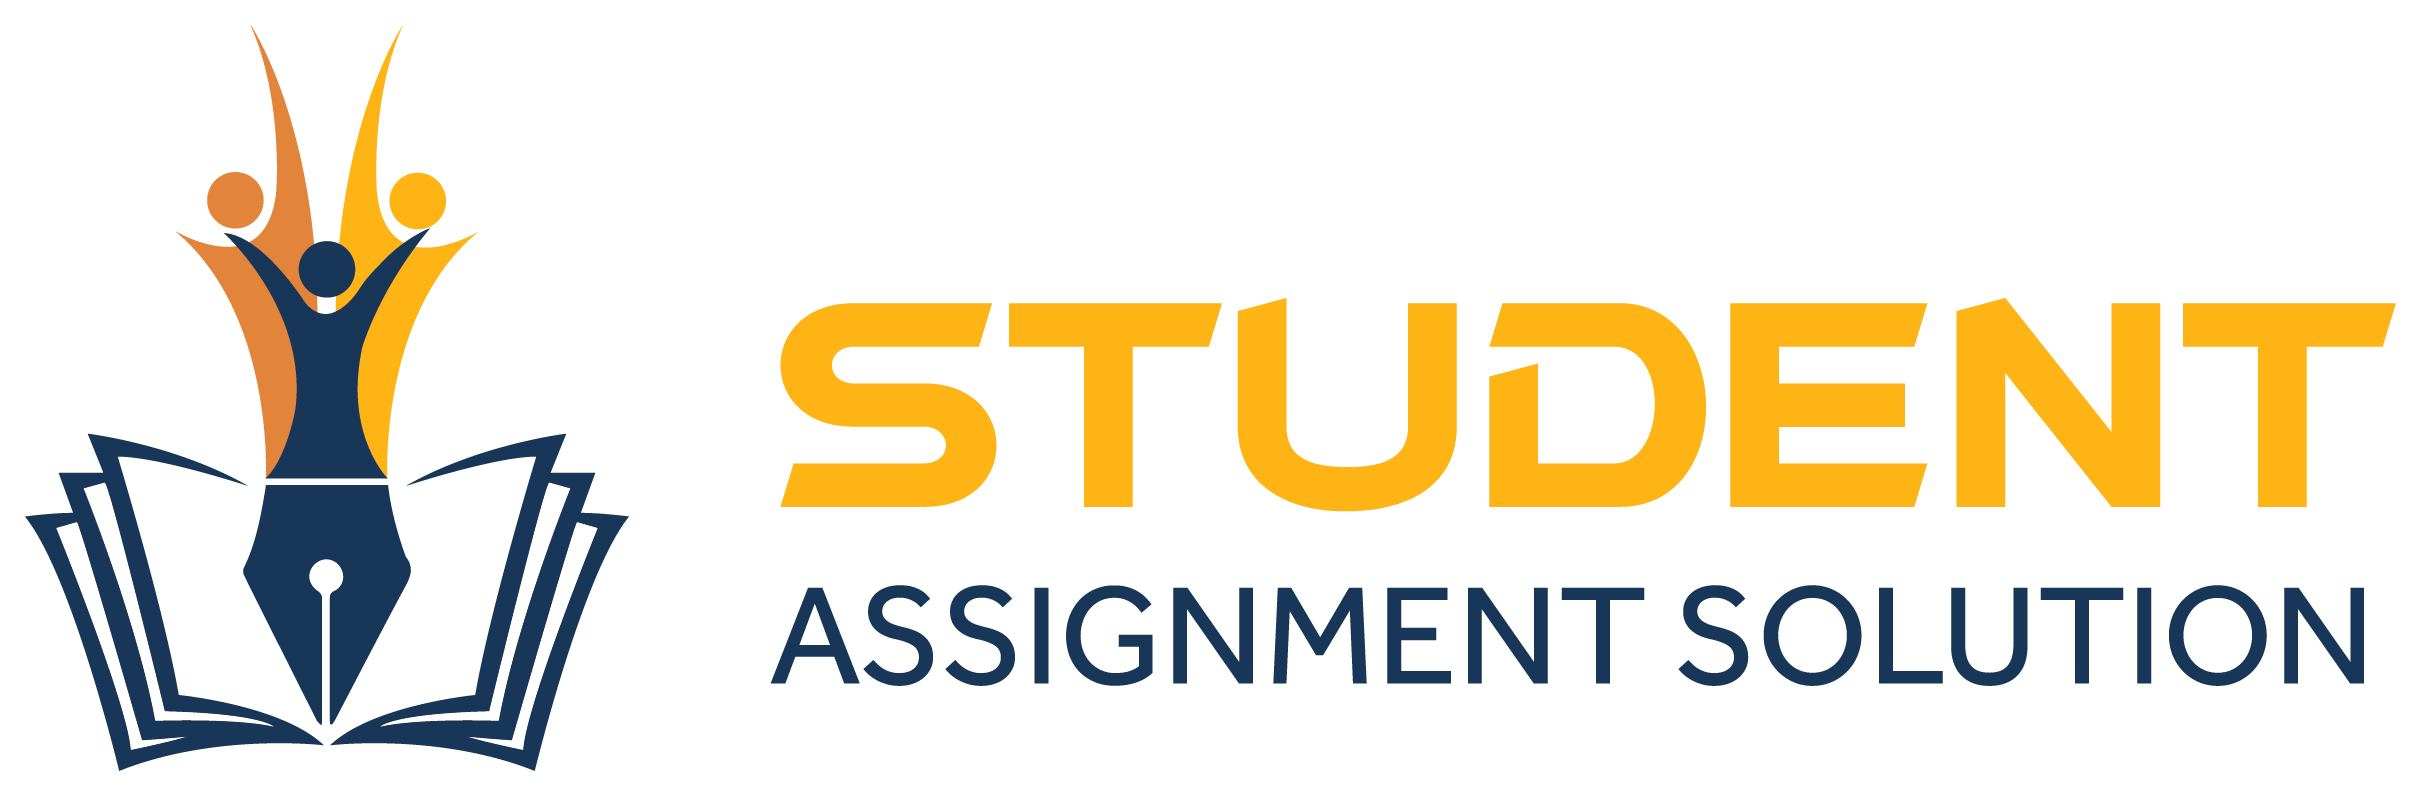 Online Assignment Writing Services-Student Assignment Solution